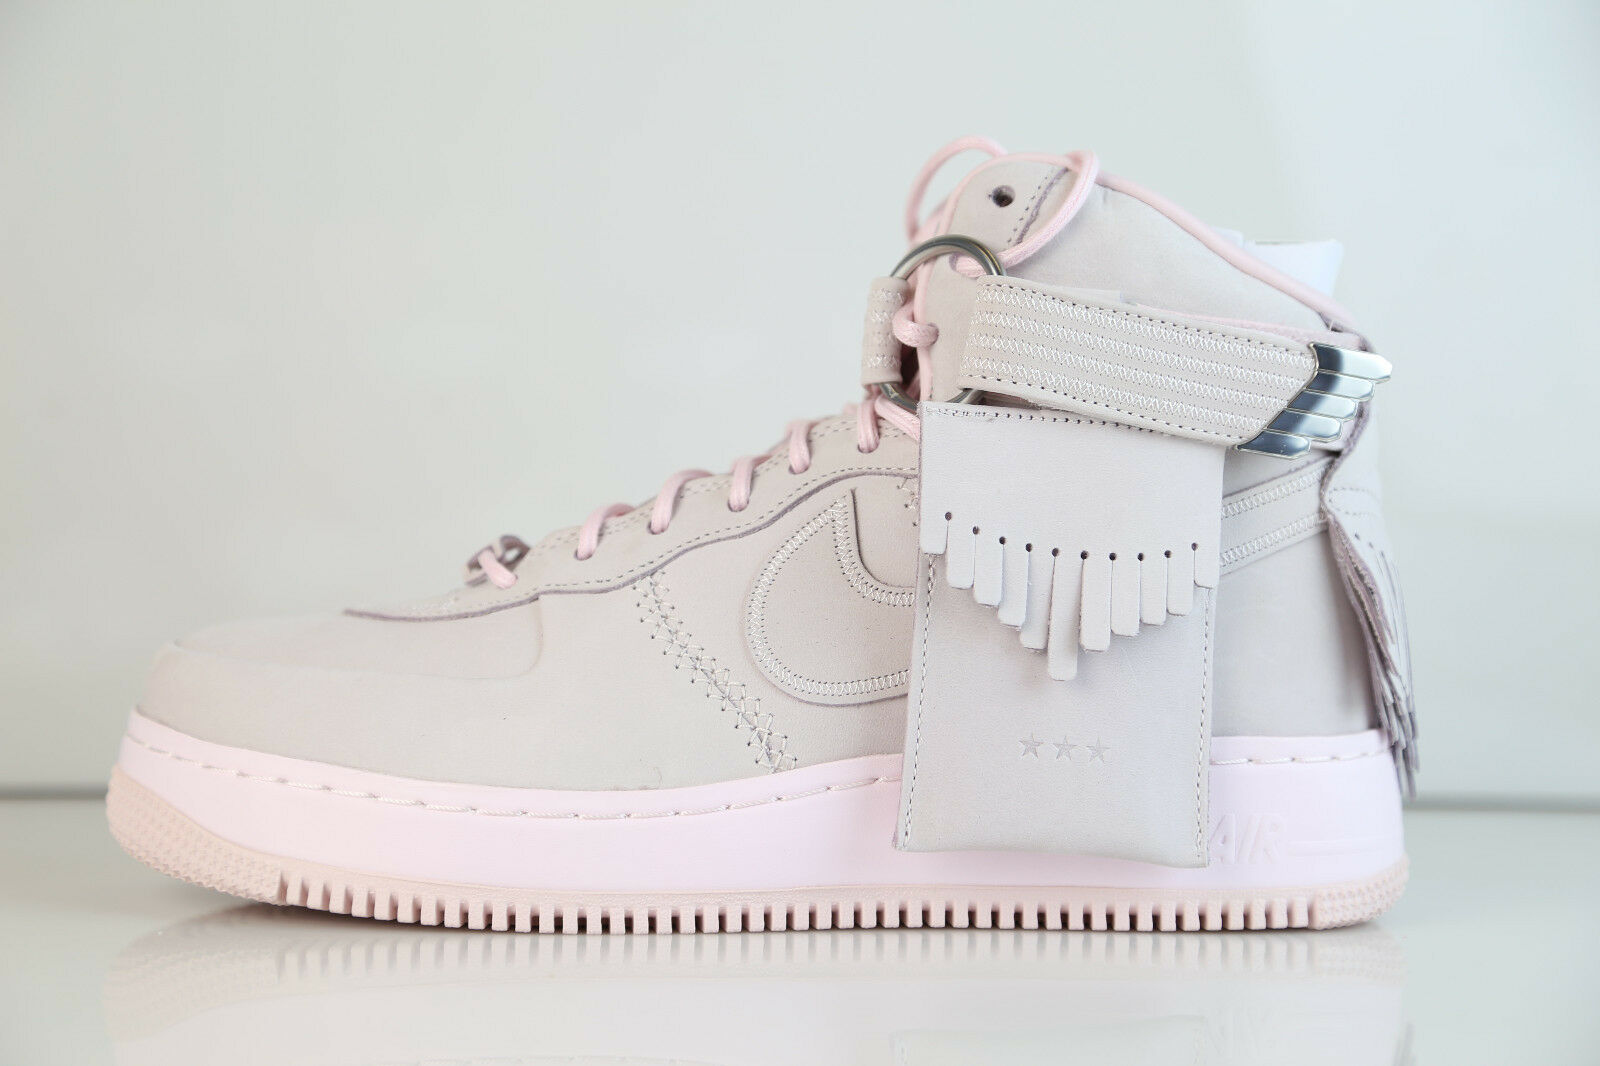 Nike Air Force 1 High SL Lux Easter Pearl Pink 919473-600 8-11 air force